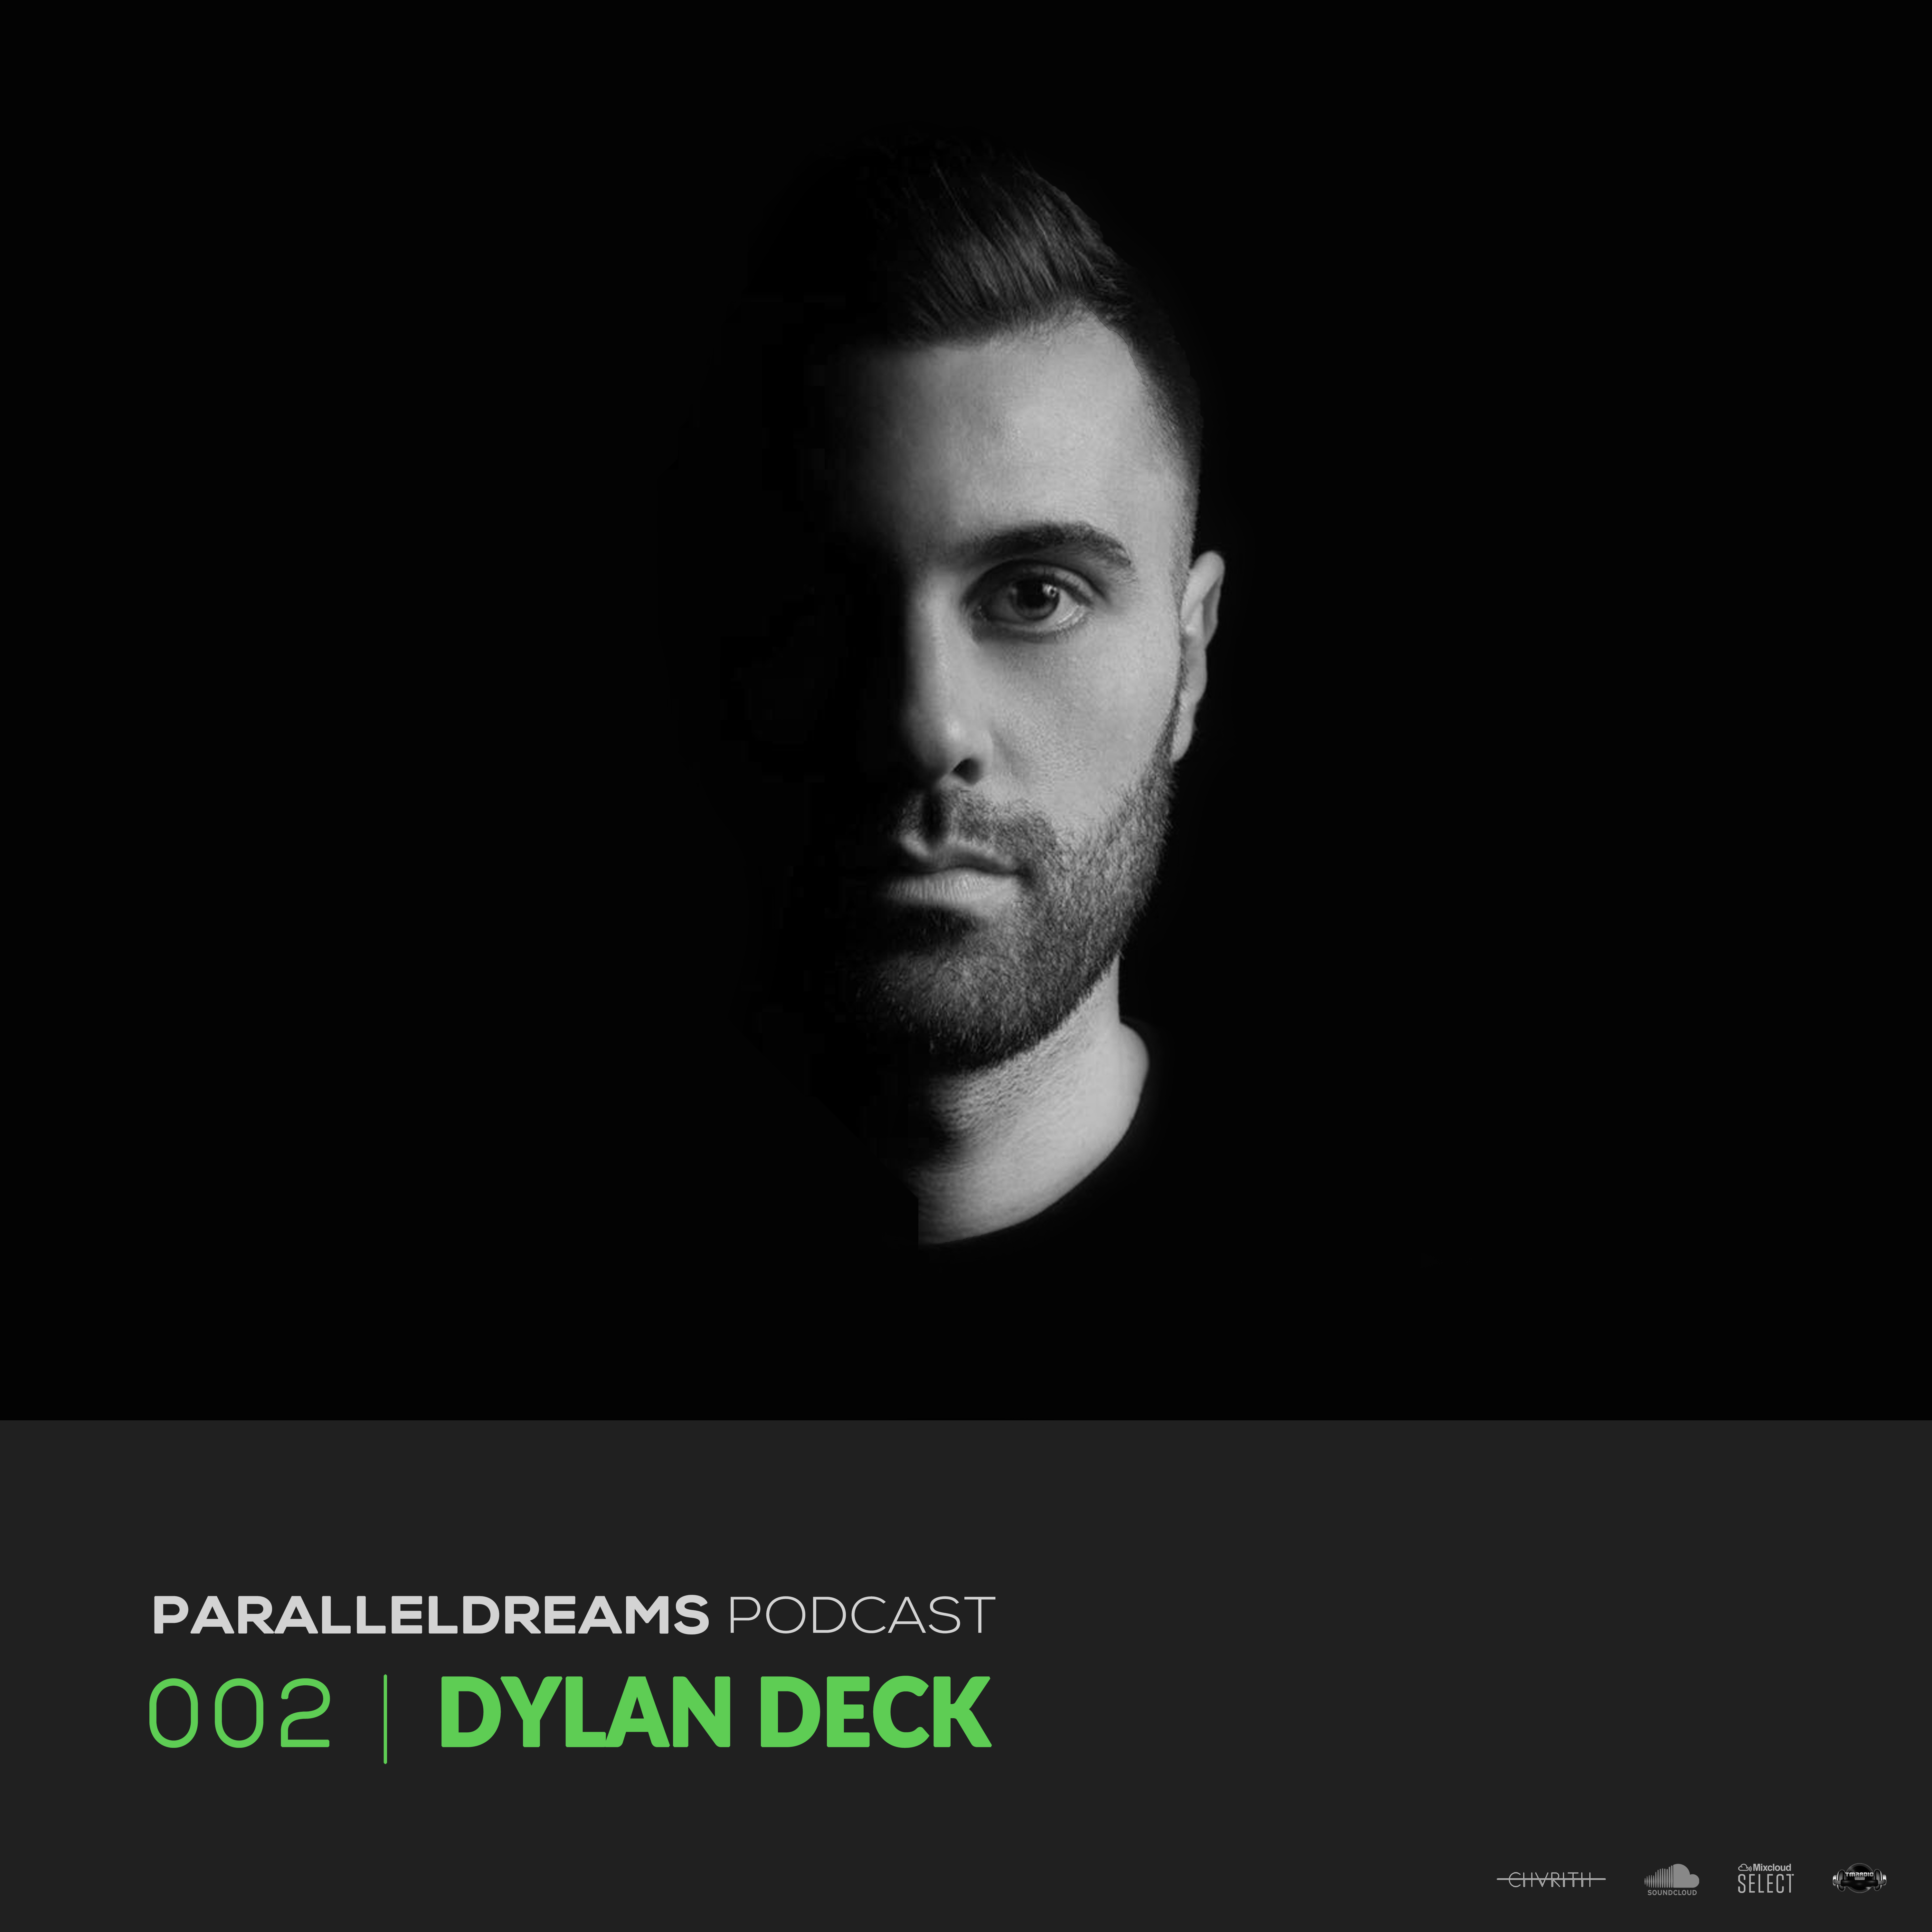 Parallel Dreams :: Episode 002 | DYLAN DECK (aired on February 7th, 2020) banner logo